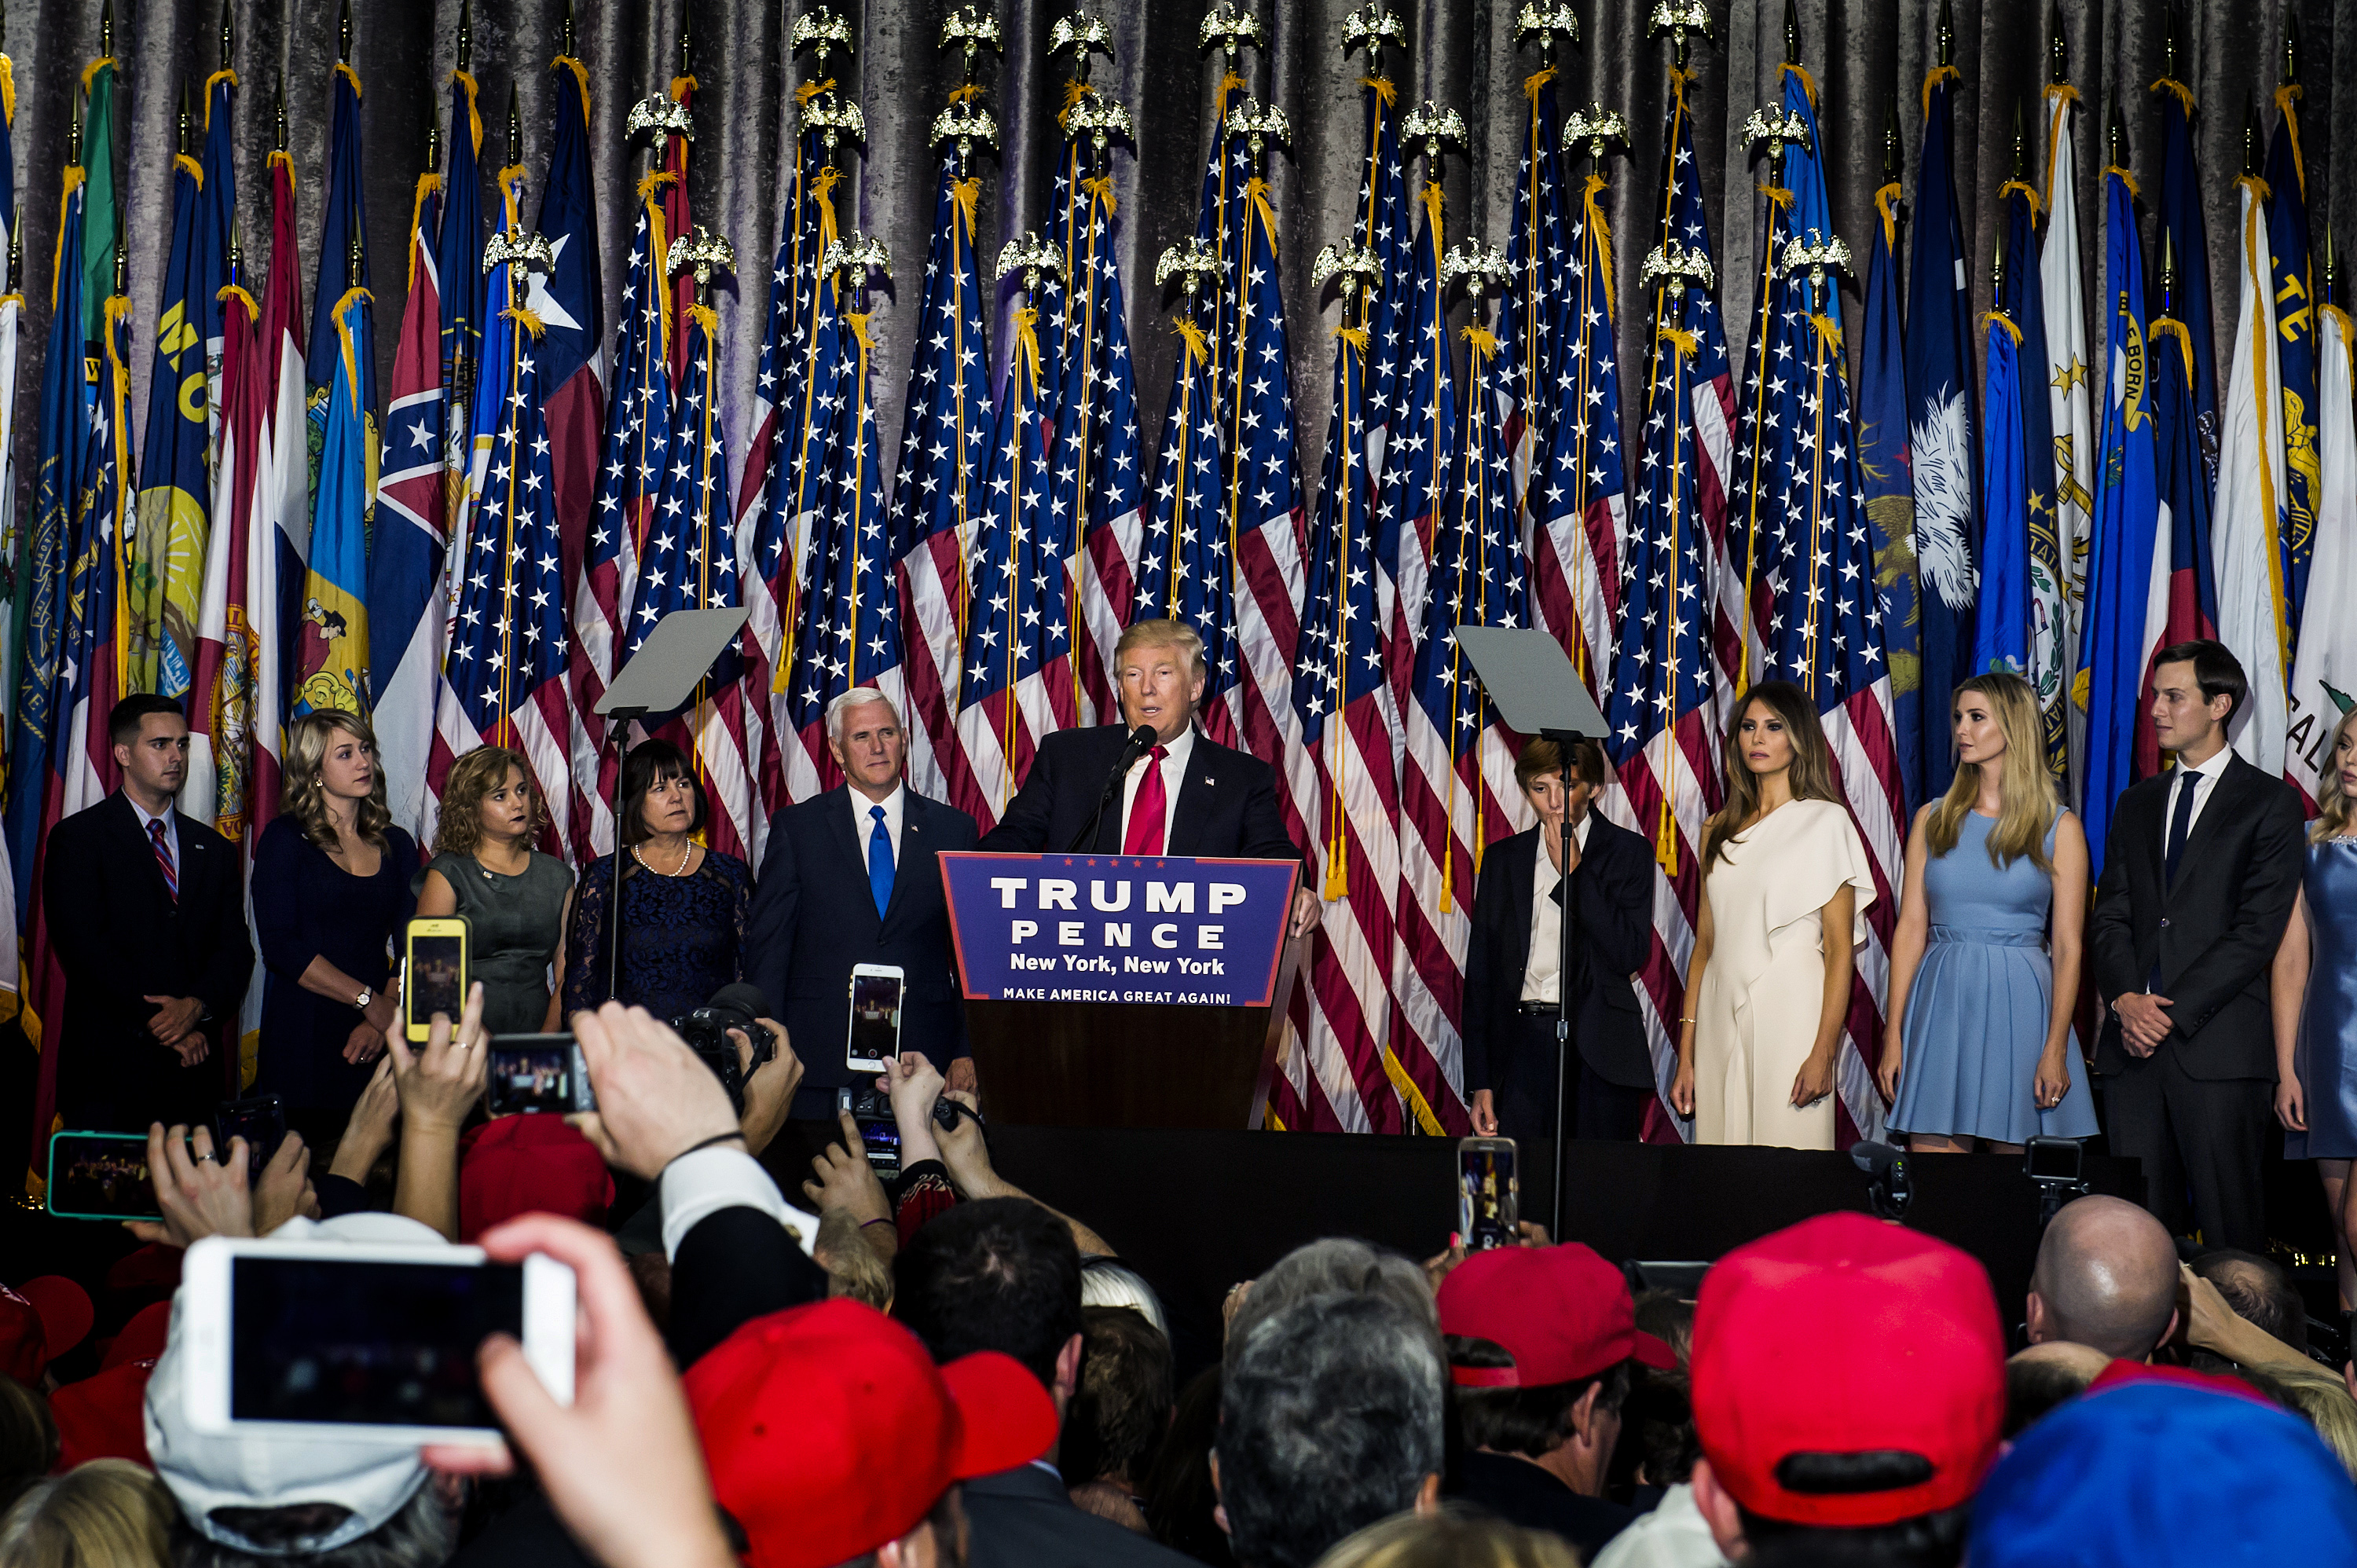 President-elect Donald Trump addresses his Victory Night party on Tuesday, Nov. 8, 2016 in New York's Manhattan borough. Trump defeated Democratic nominee Hillary Clinton in the contest for president of the United States.President-elect Donald Trump addresses his Victory Night party on Tuesday, Nov. 8, 2016 in New York's Manhattan borough. Trump defeated Democratic nominee Hillary Clinton in the contest for president of the United States.